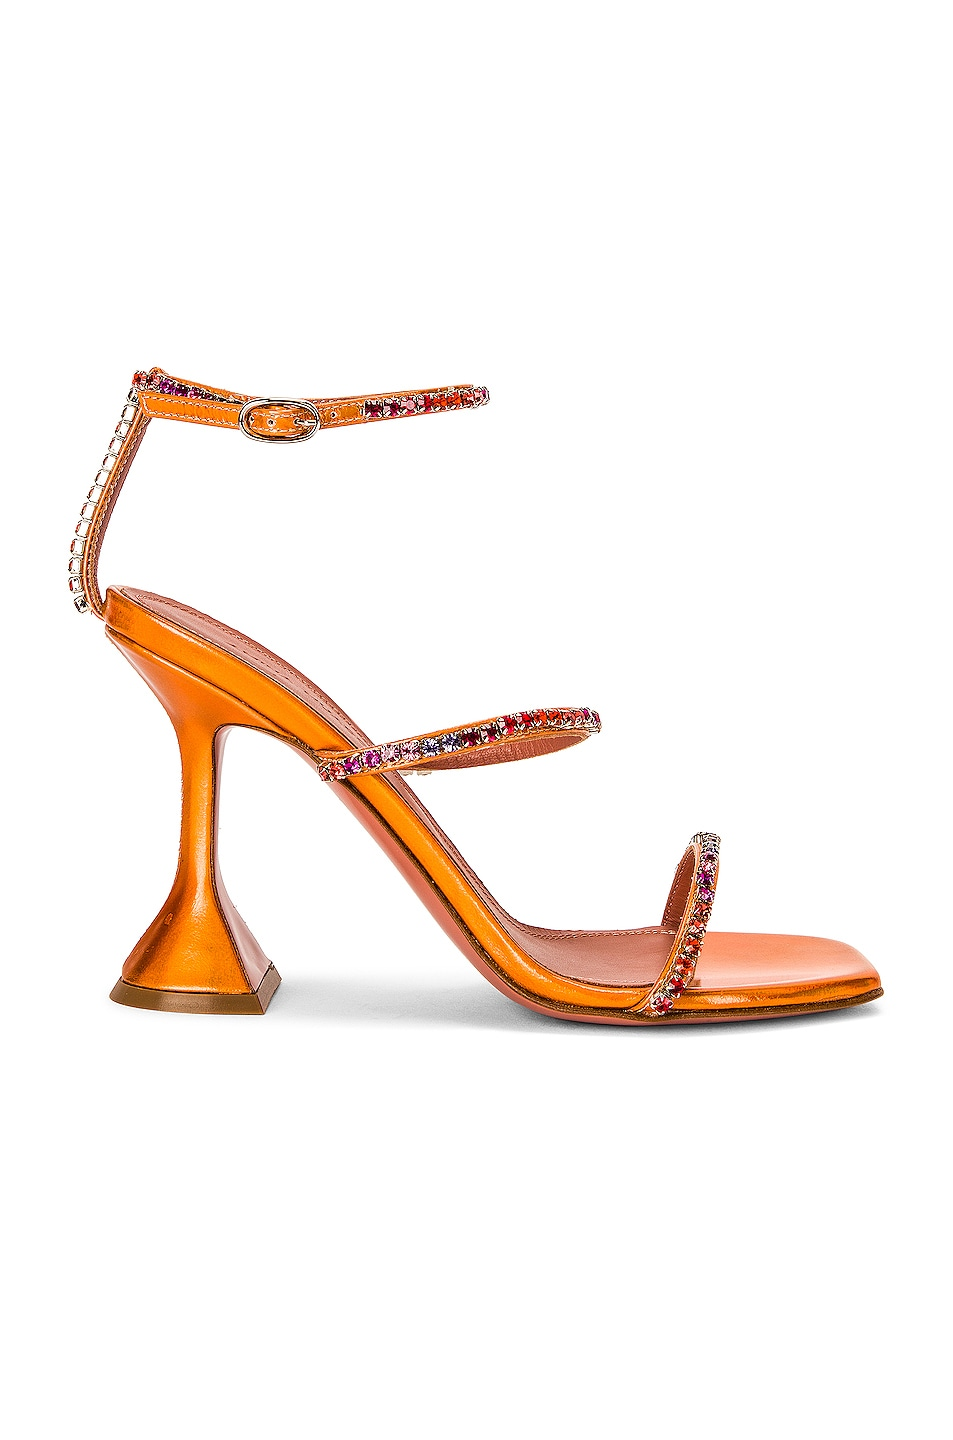 Image 1 of AMINA MUADDI Gilda Sandal in Orange Hologram & Sunset Rainbow